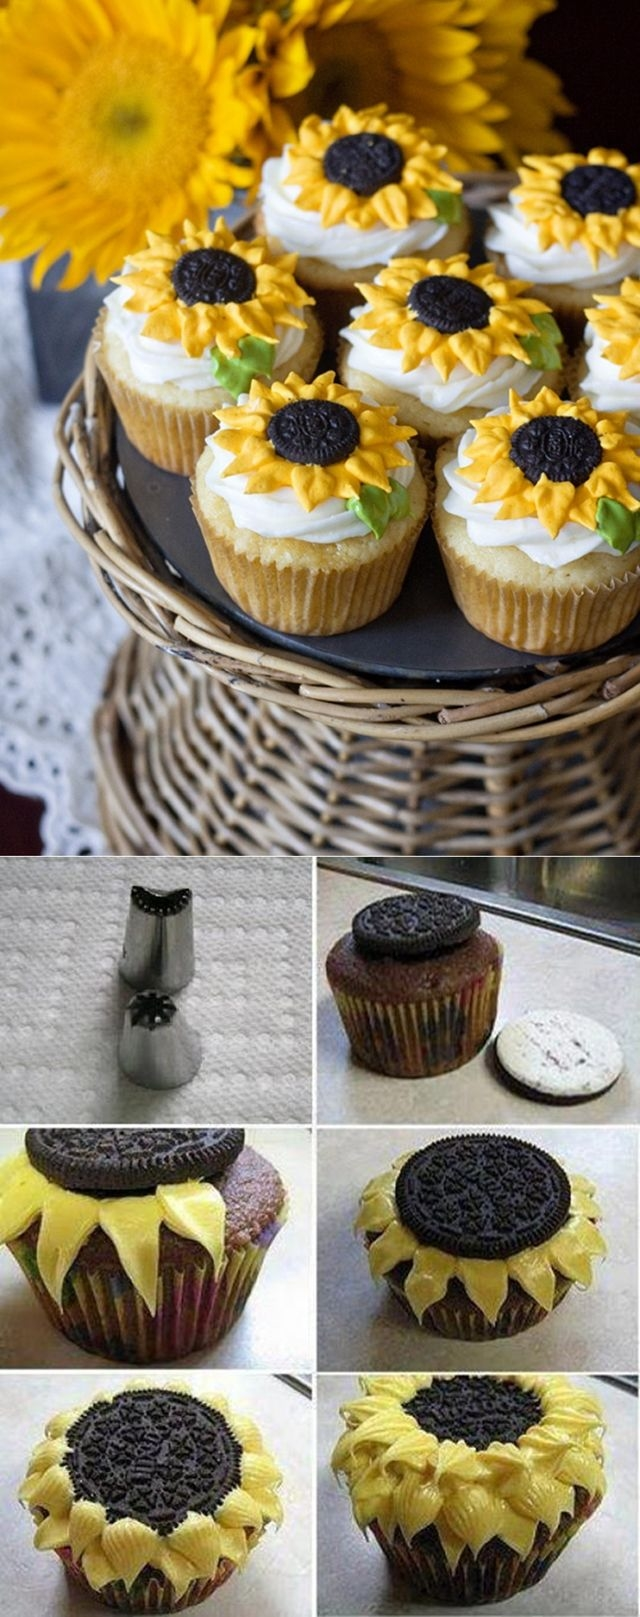 DIY Sunflower Cupcakes Pictures, Photos, And Images For